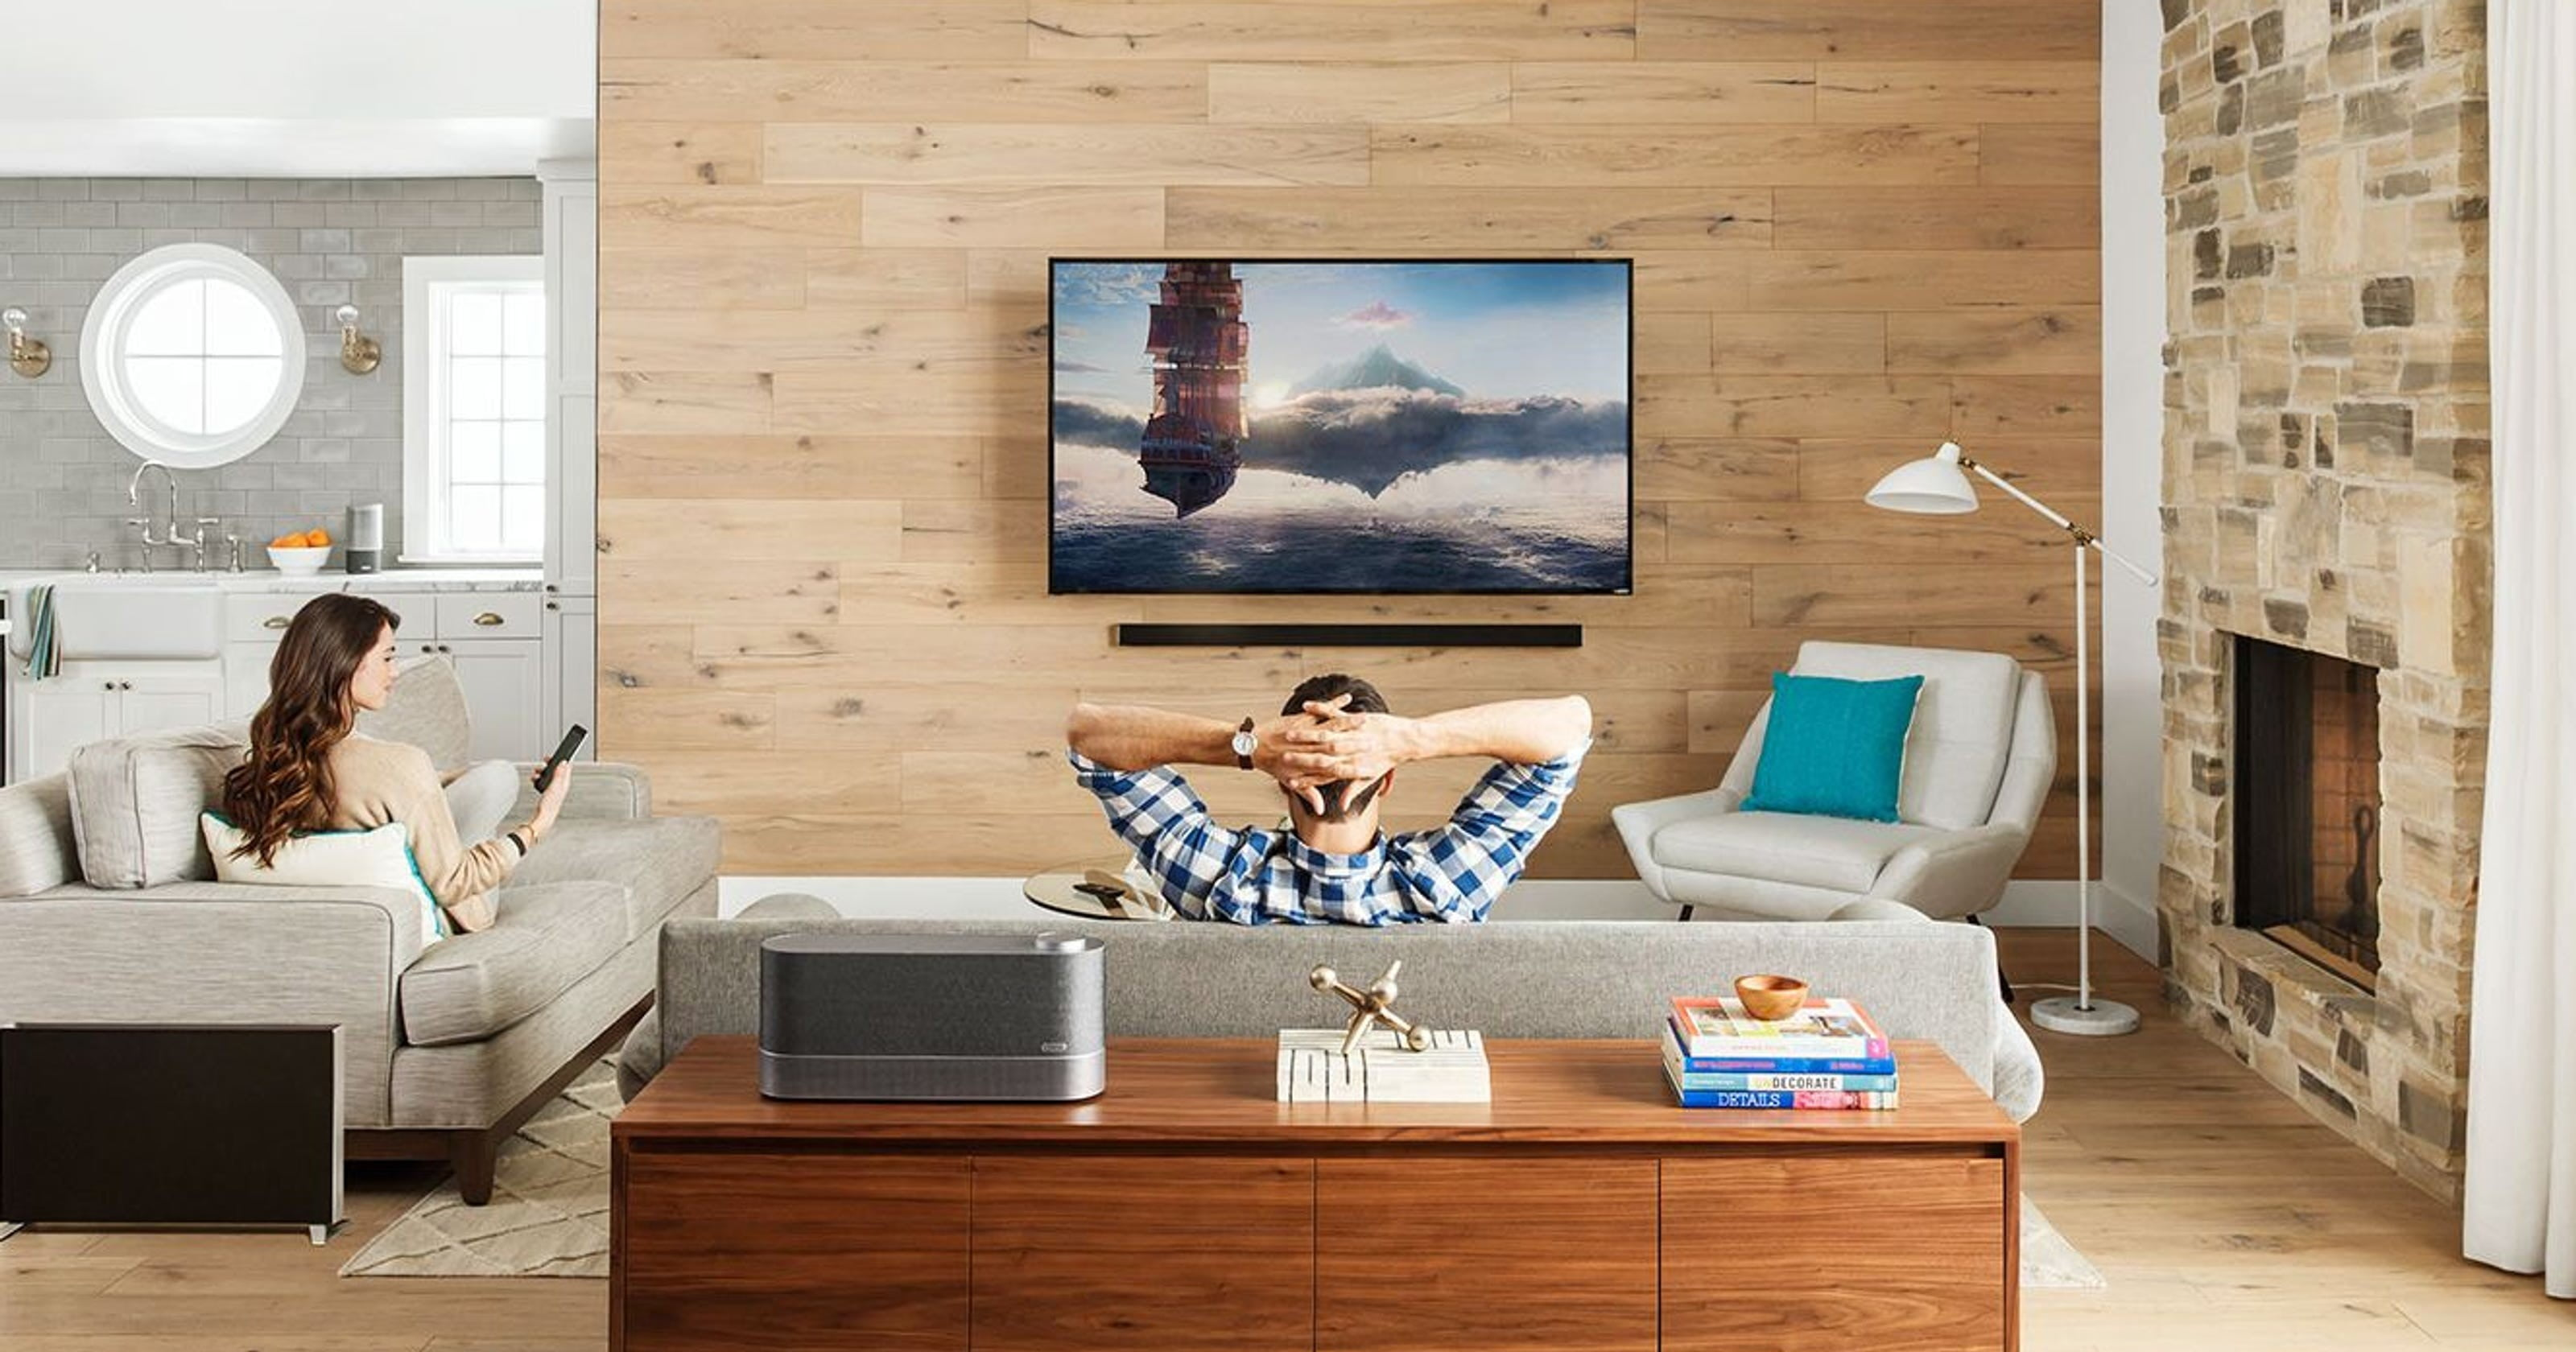 This could be the best deal on a 70-inch Vizio 4K TV we've ever seen